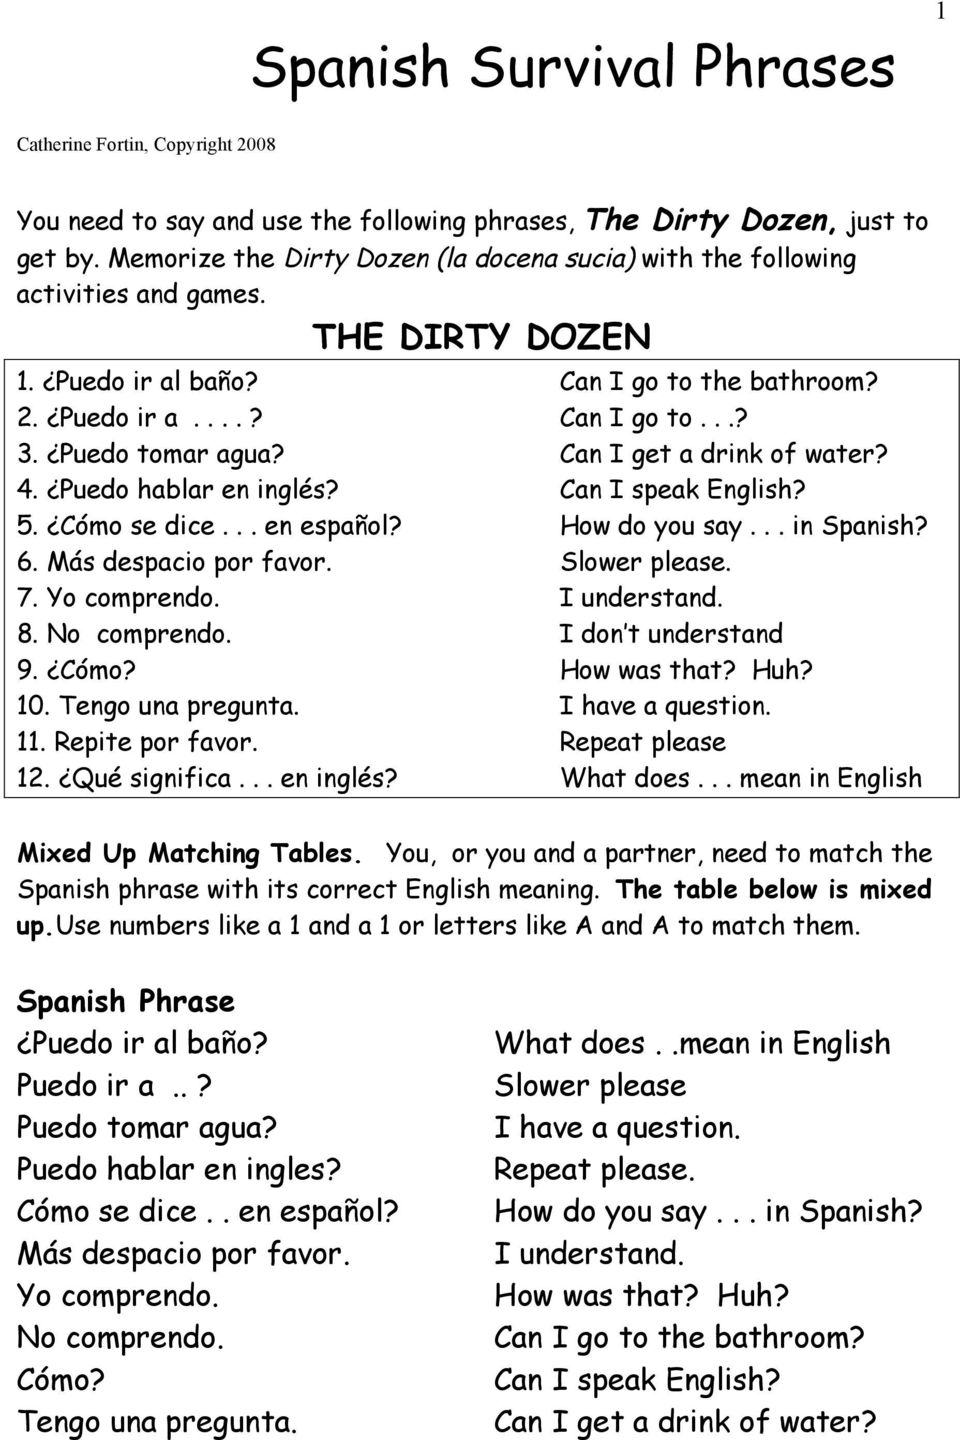 Spanish Survival Phrases - PDF on need to use the bathroom, can i go too, can i go to space, waiting for the bathroom, unable to go to bathroom, i can use the bathroom, go hotel bathroom, urge to go to bathroom, waiting to use the bathroom, can i go to school, went to bathroom, clip art going to the bathroom, urgency to use the bathroom, meme don't stink up the bathroom,